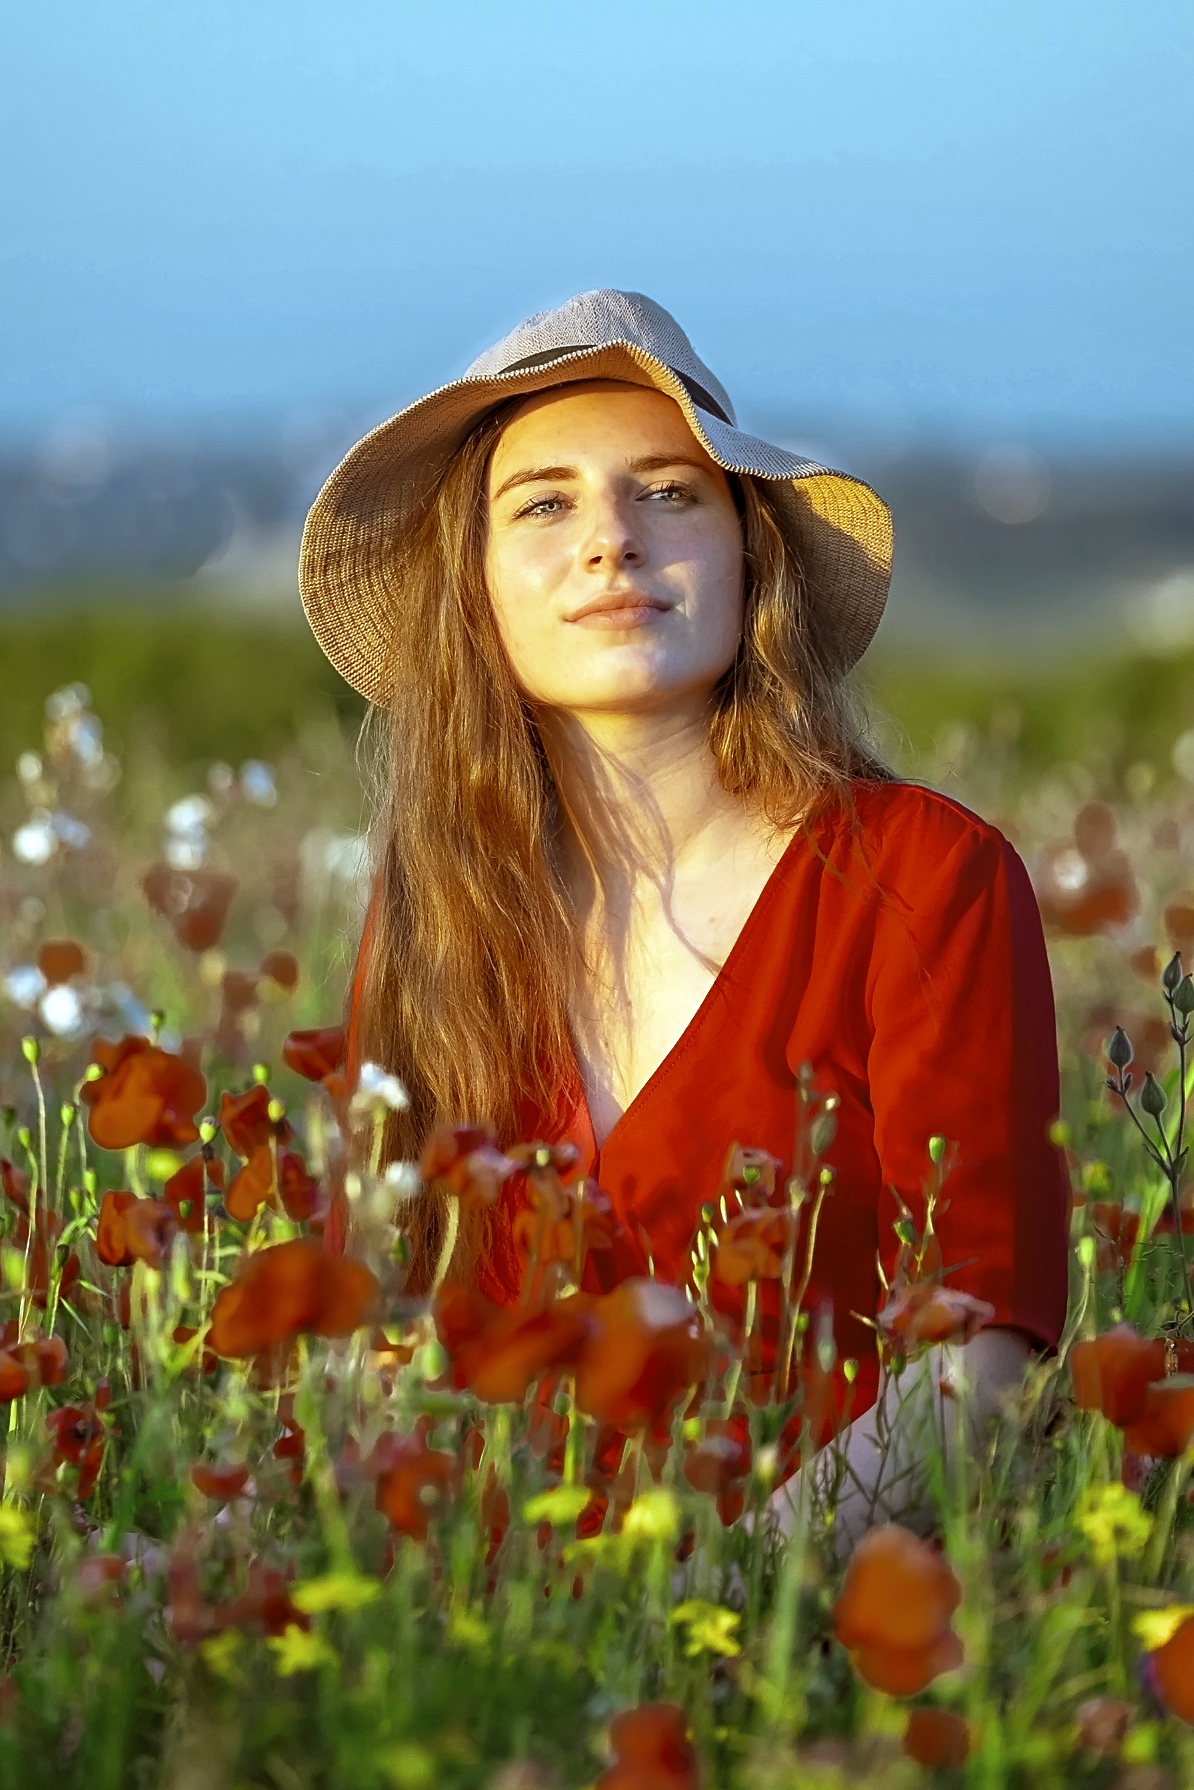 poppy field sun hat girl